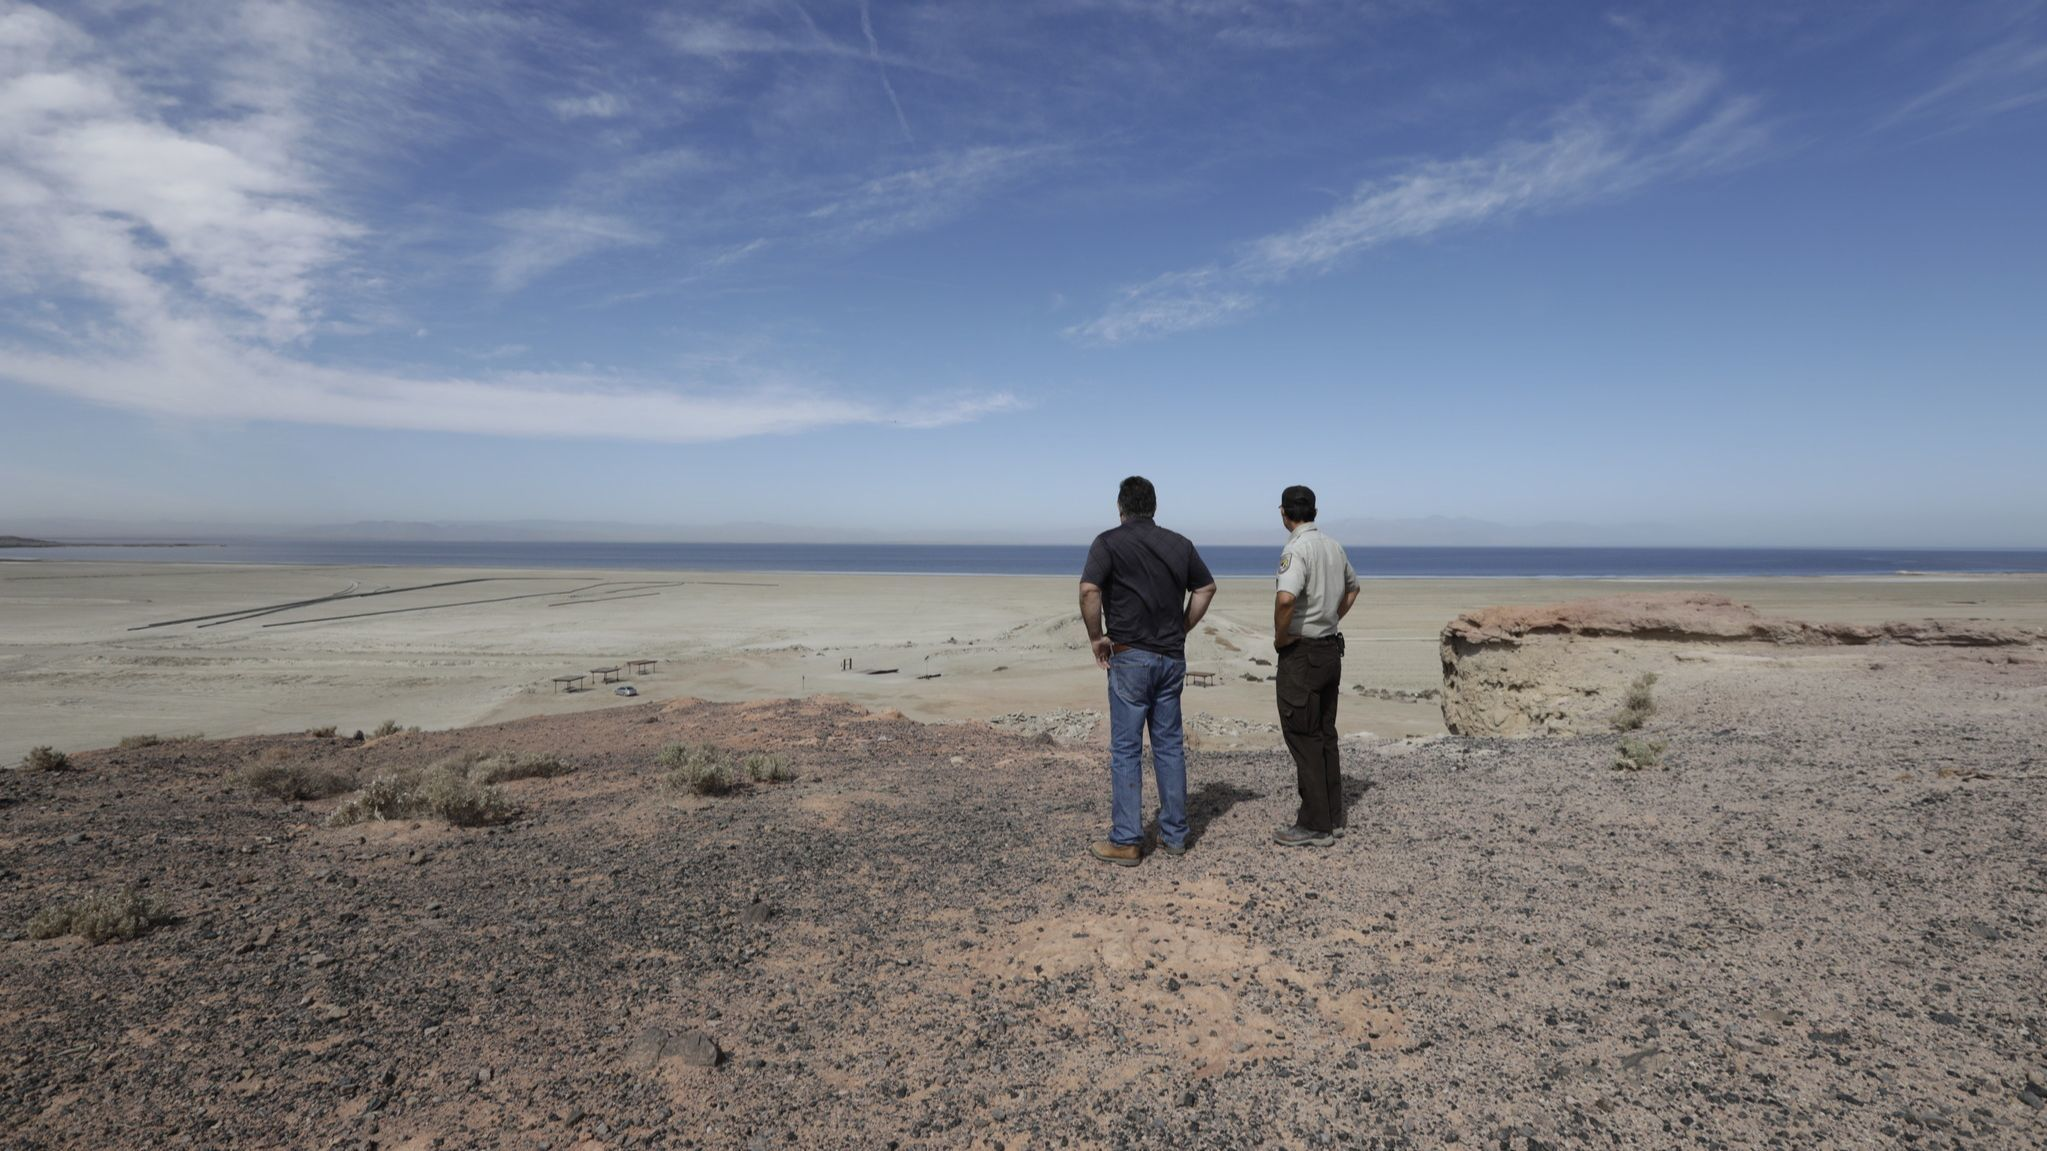 The Salton Sea is a disaster in the making. California isn't doing anything to stop it